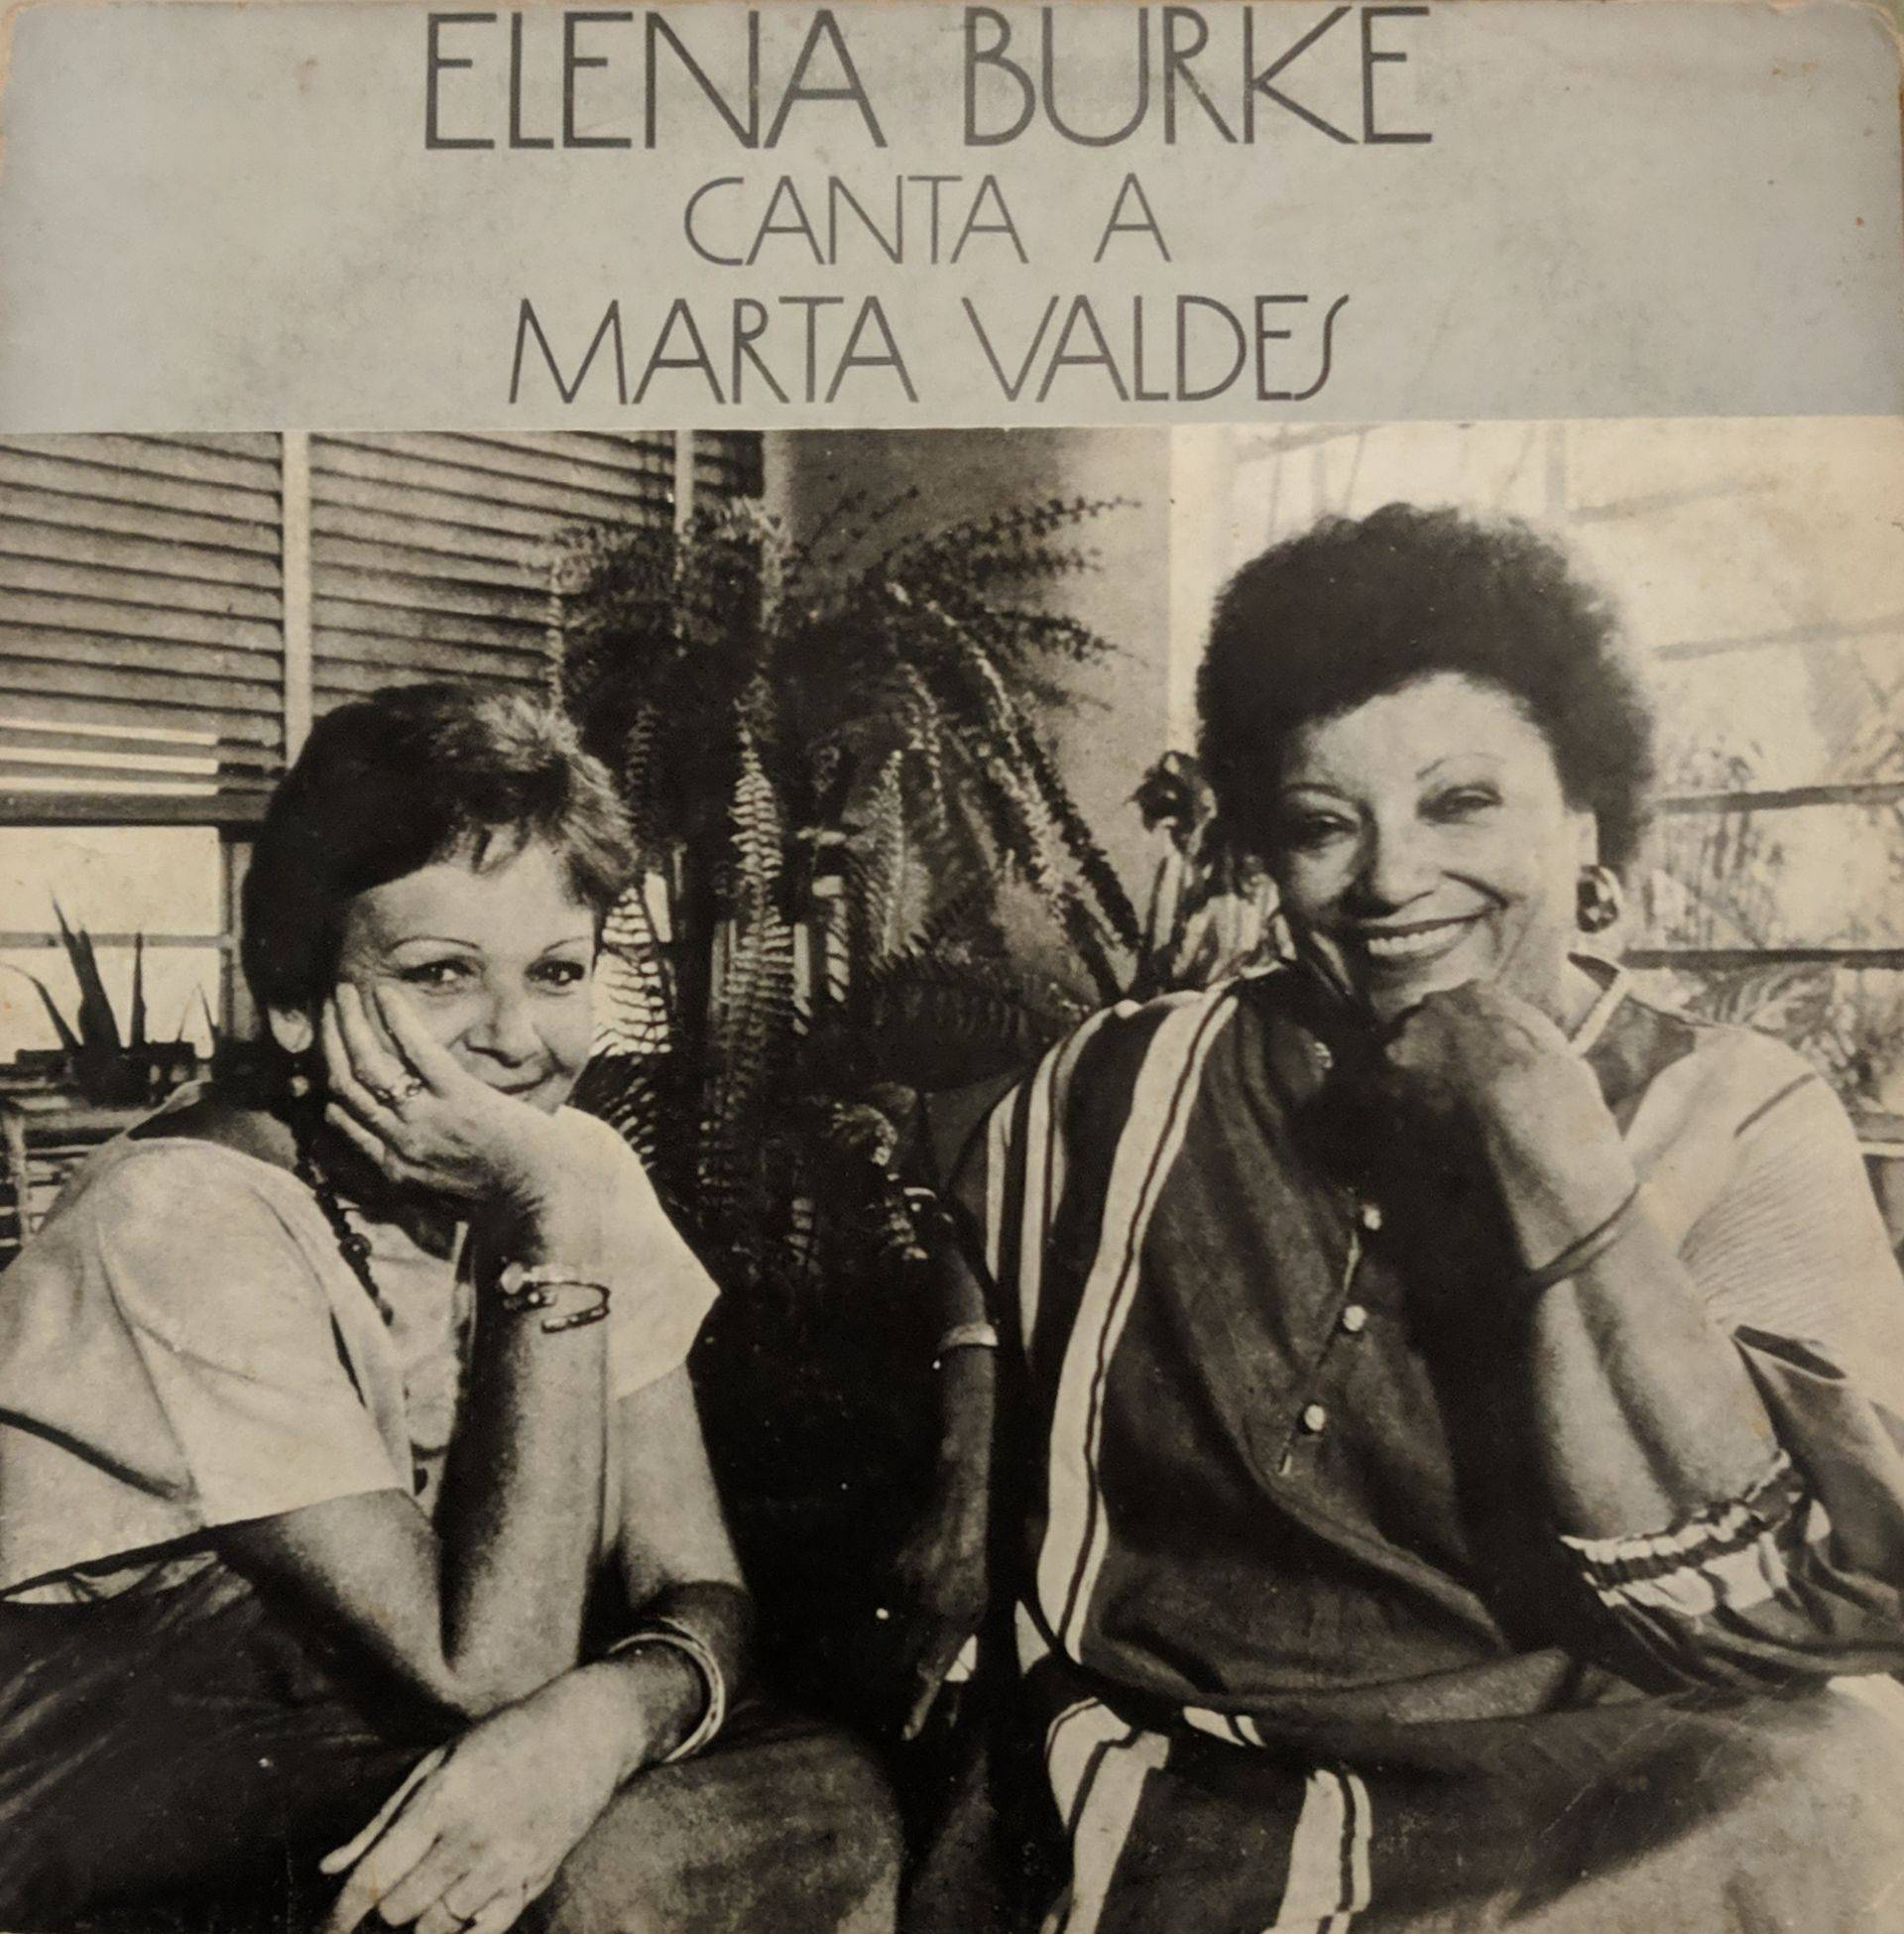 Cover of the album Elena Burke sings to Marta Valdés.